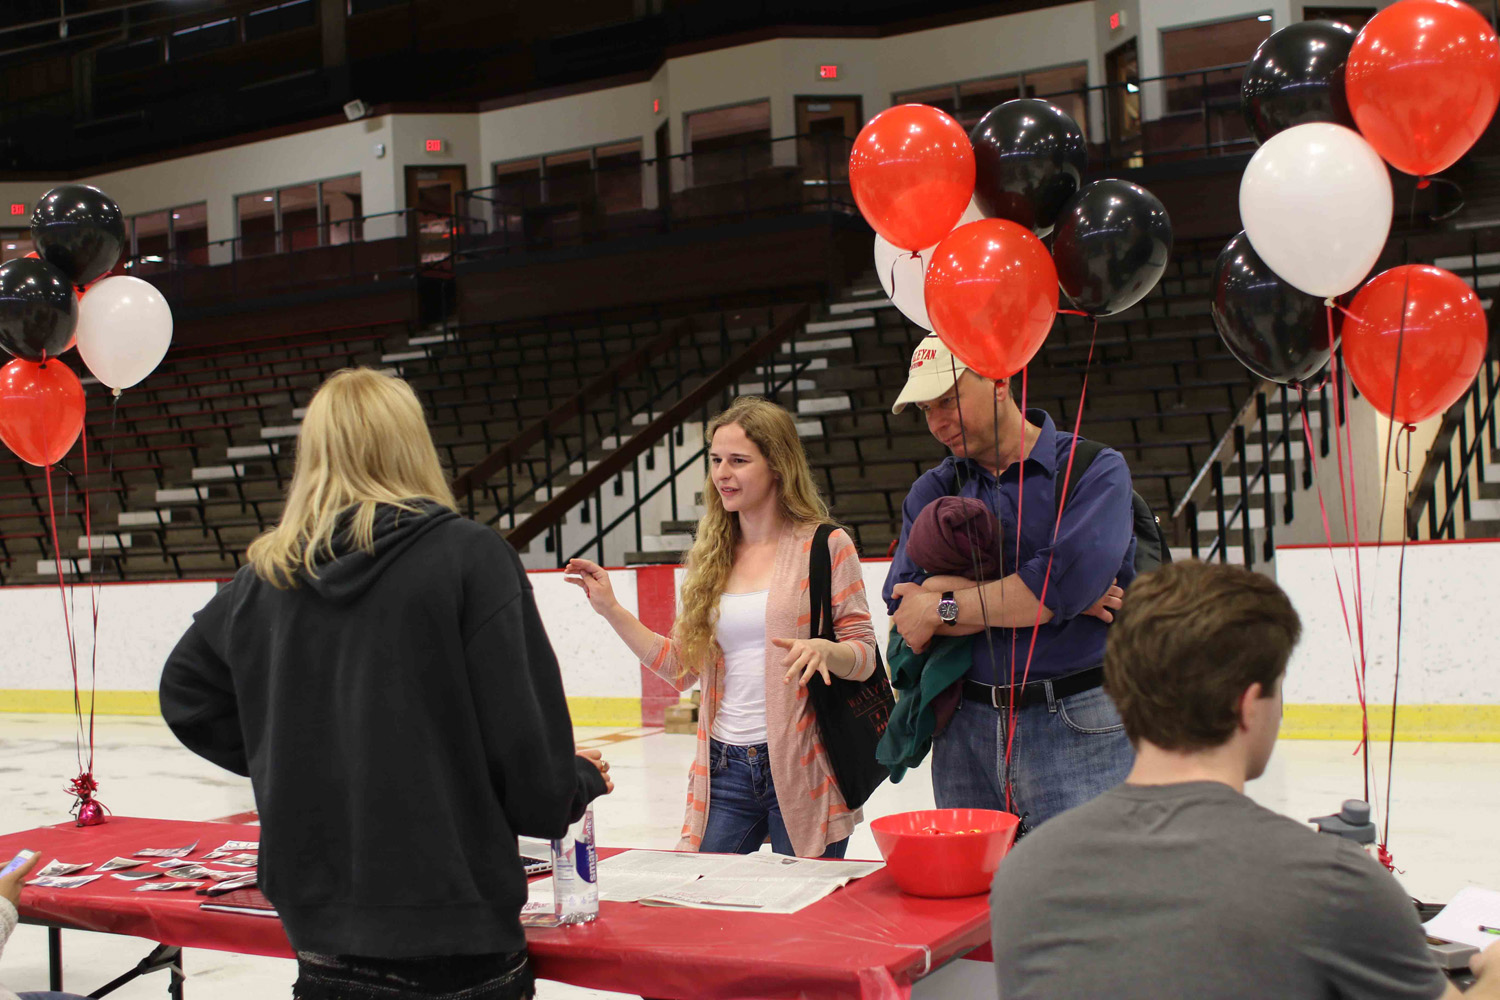 Student activities fair at Freeman Athletic Center, April 17.